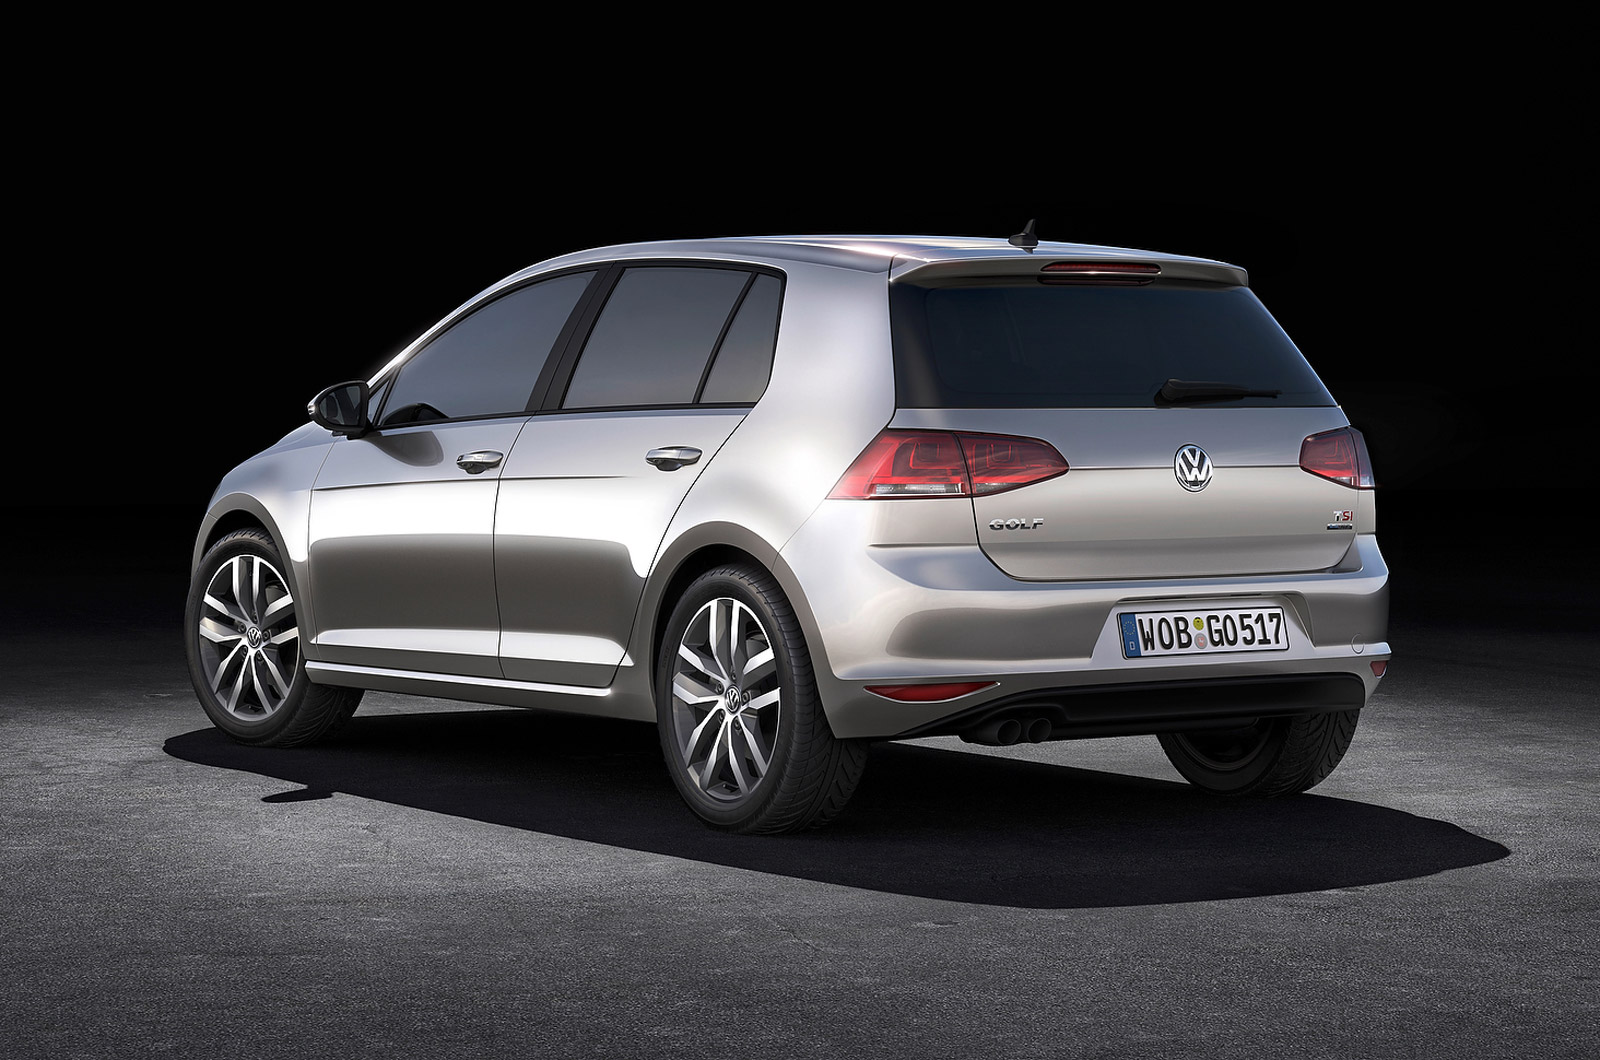 vw golf mk7 engine range announced golf mk7 forum. Black Bedroom Furniture Sets. Home Design Ideas